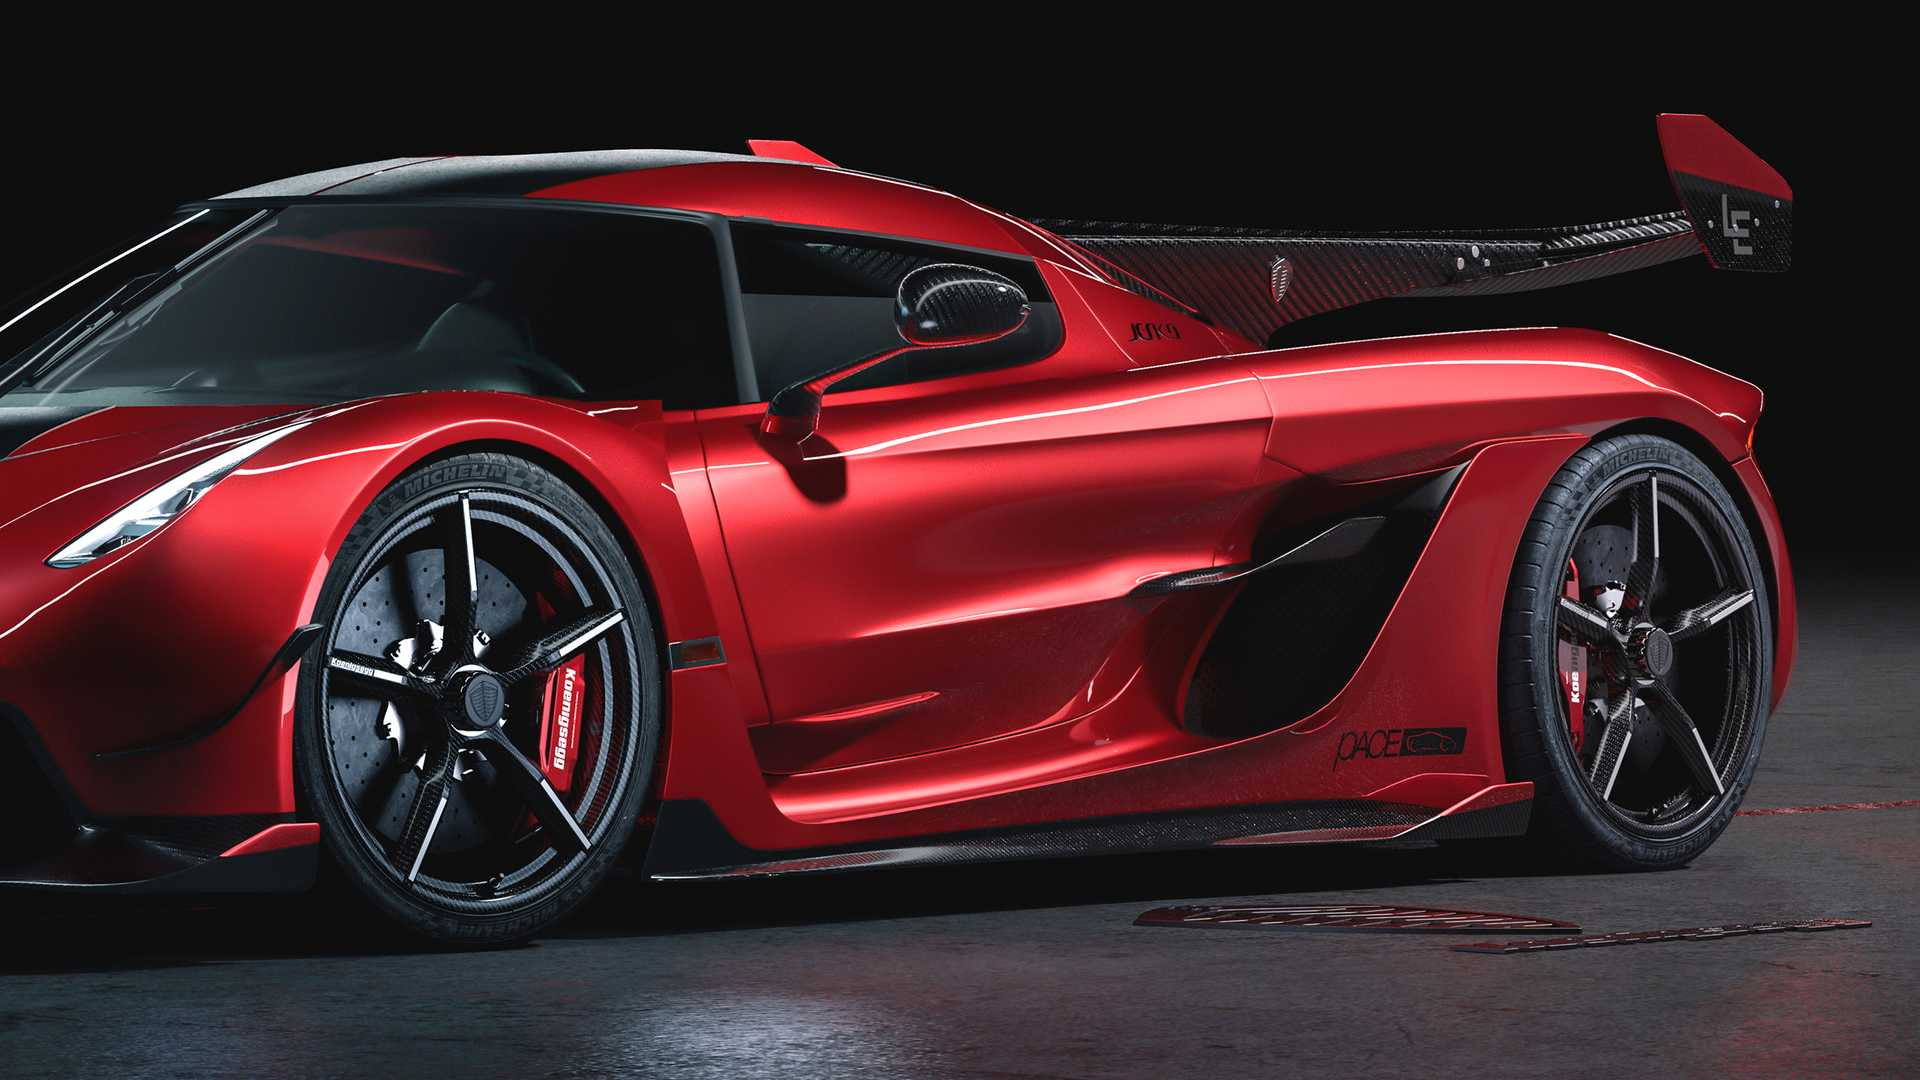 2020 Koenigsegg Jesko Cherry Red Edition10 Detail Wallpapers (8)